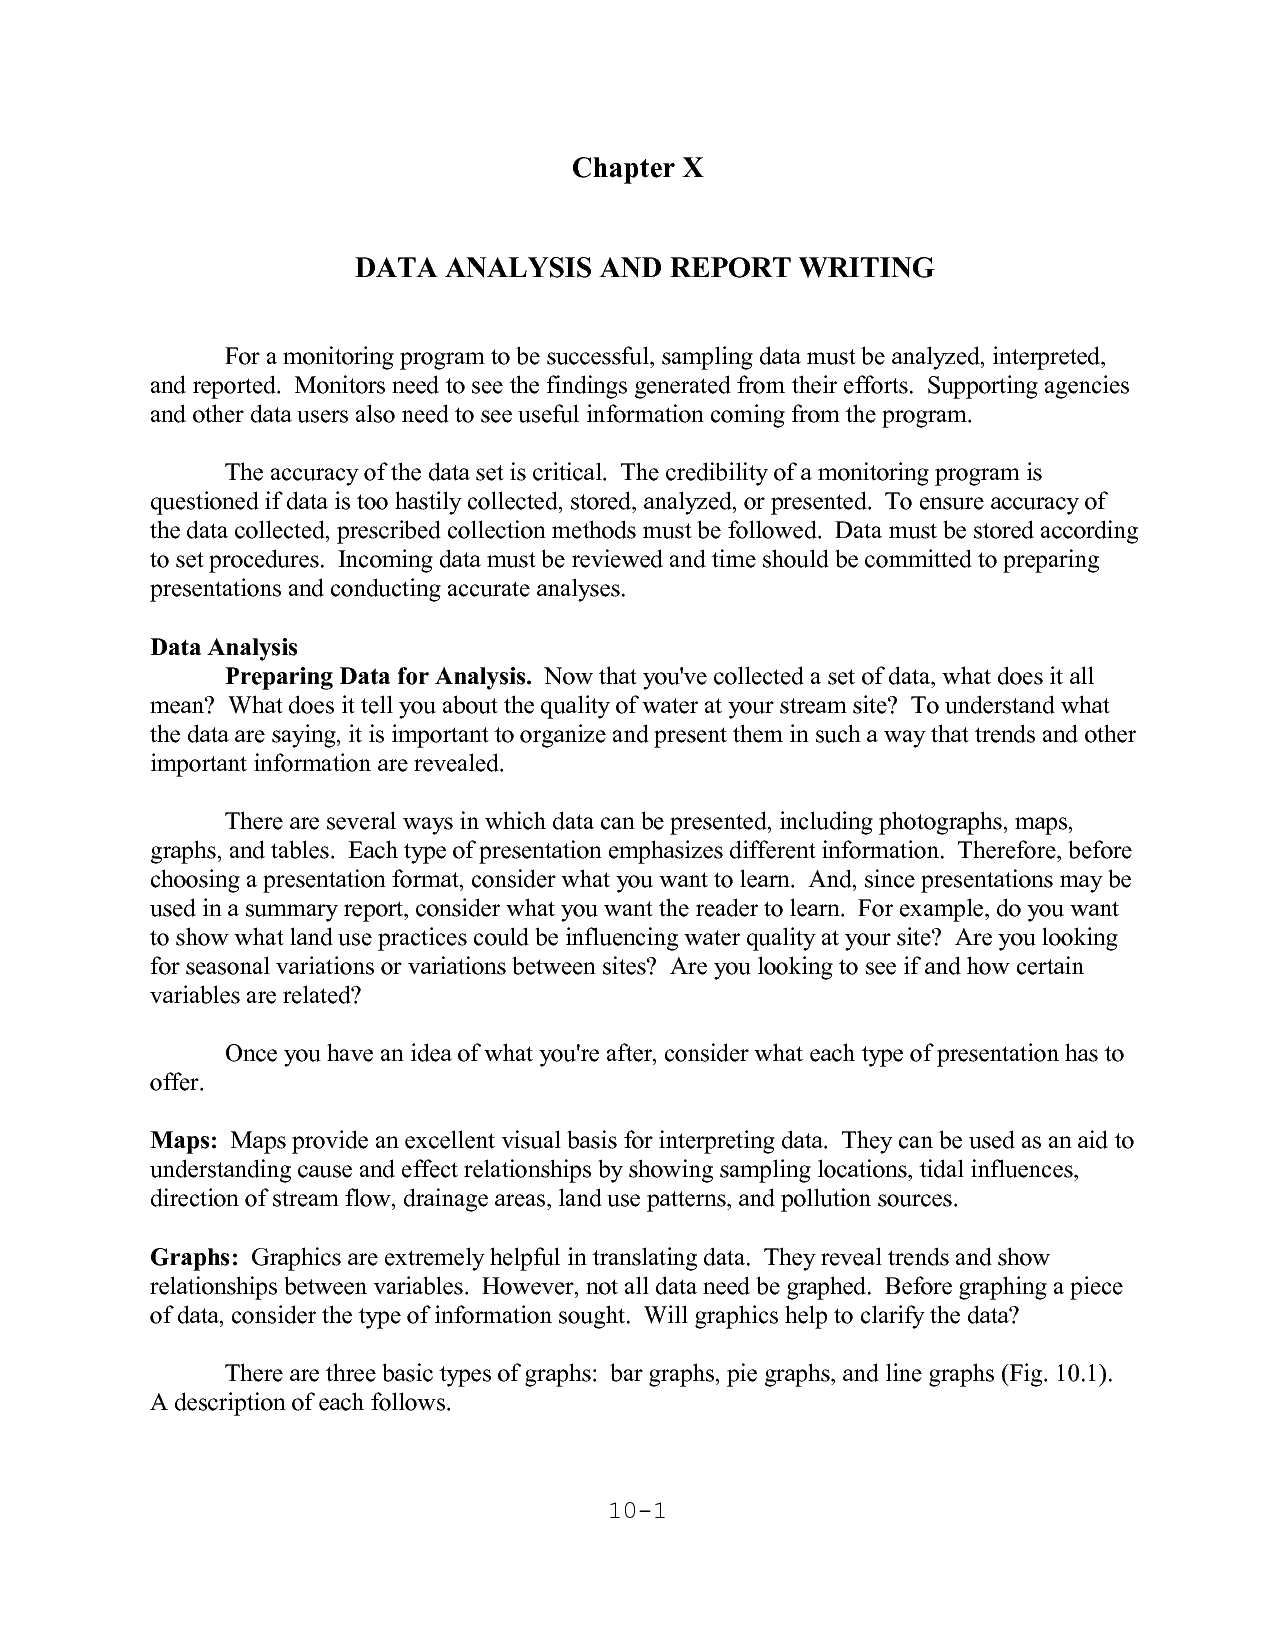 Business Analysis Report Sample and Data Analysis and Report Writing Sample Helloalive